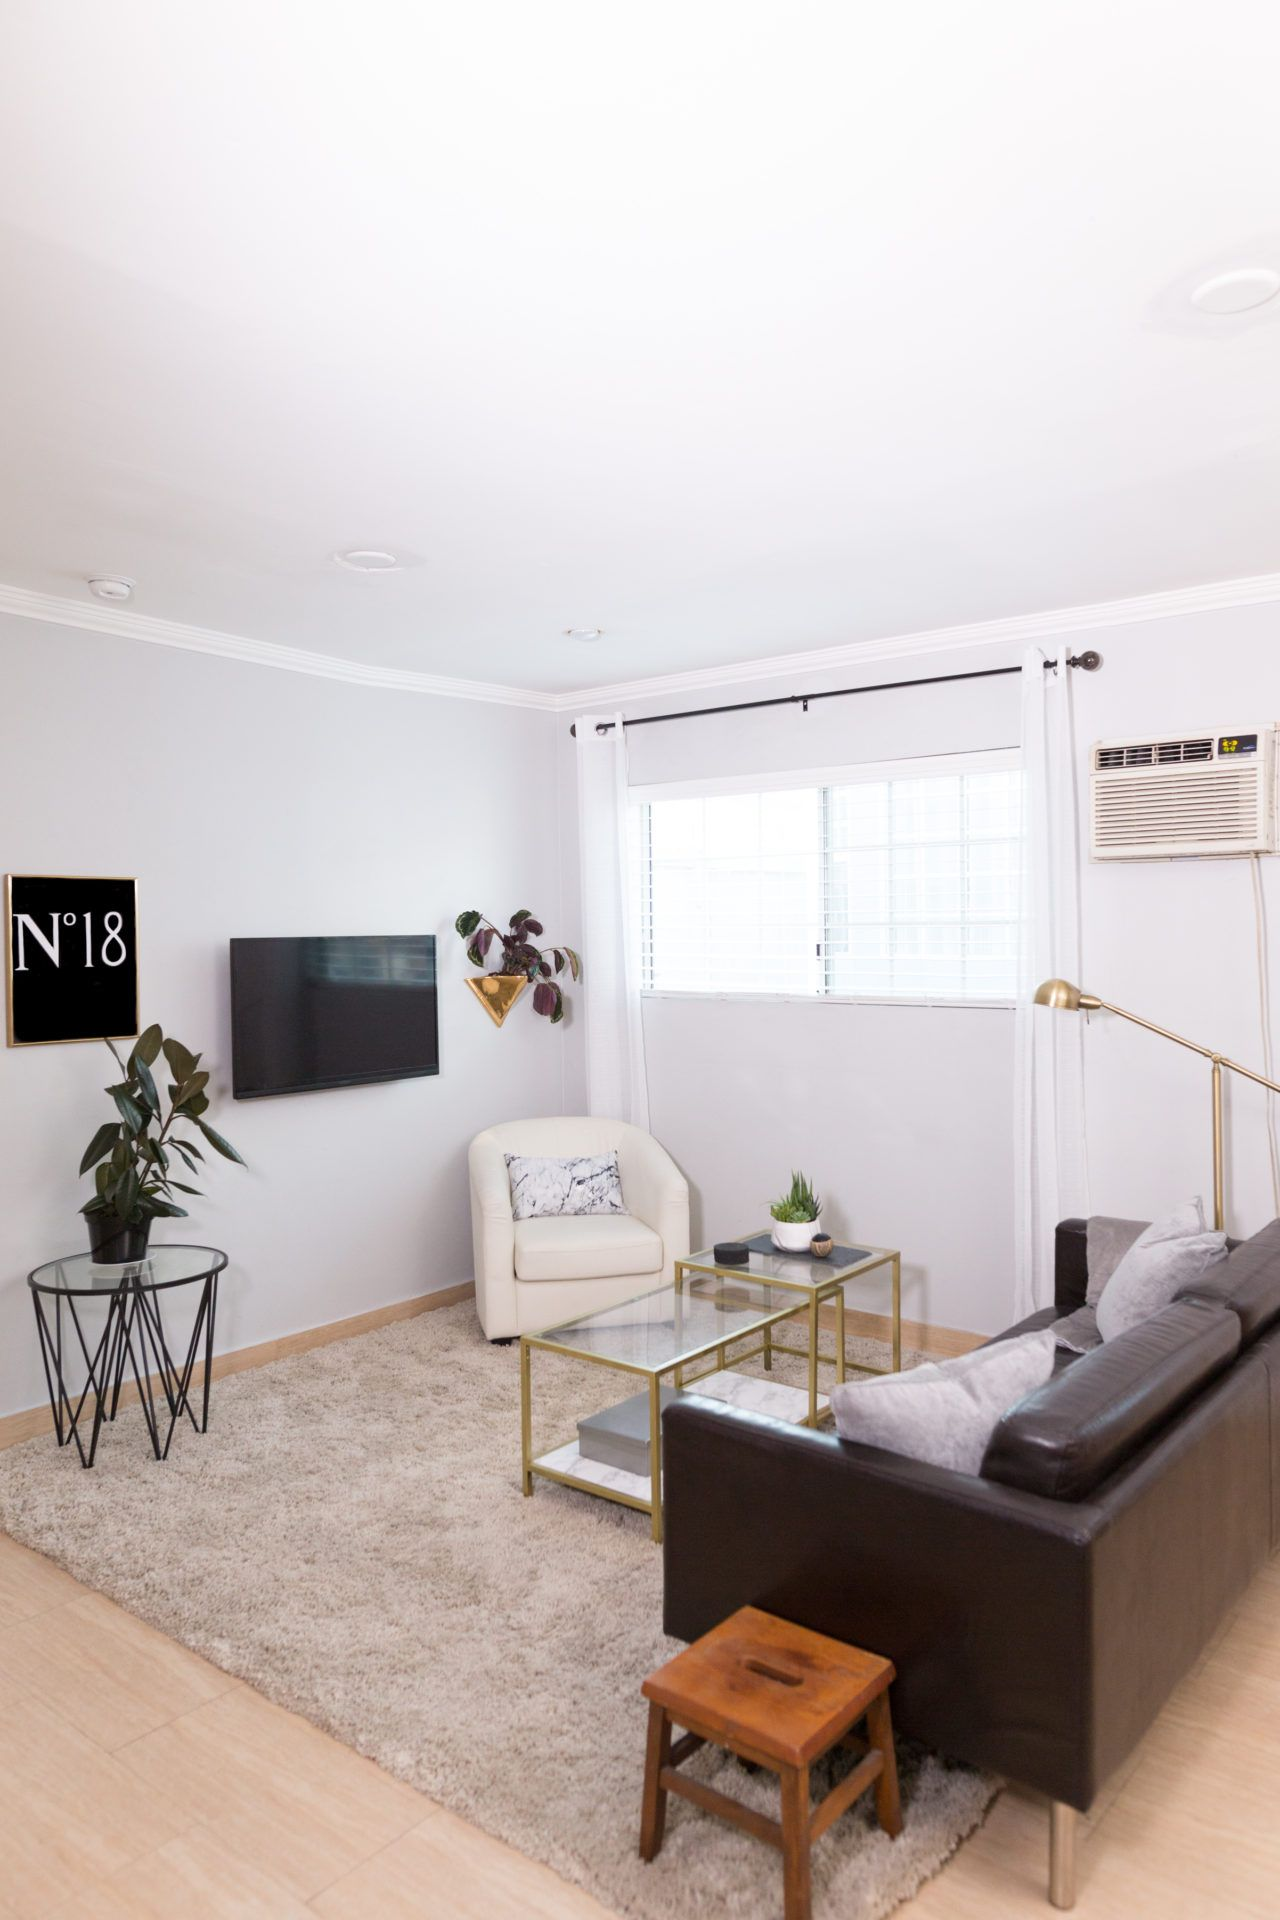 Tumblr Minimalist Living Room On A Budget Minimalist Bedroom